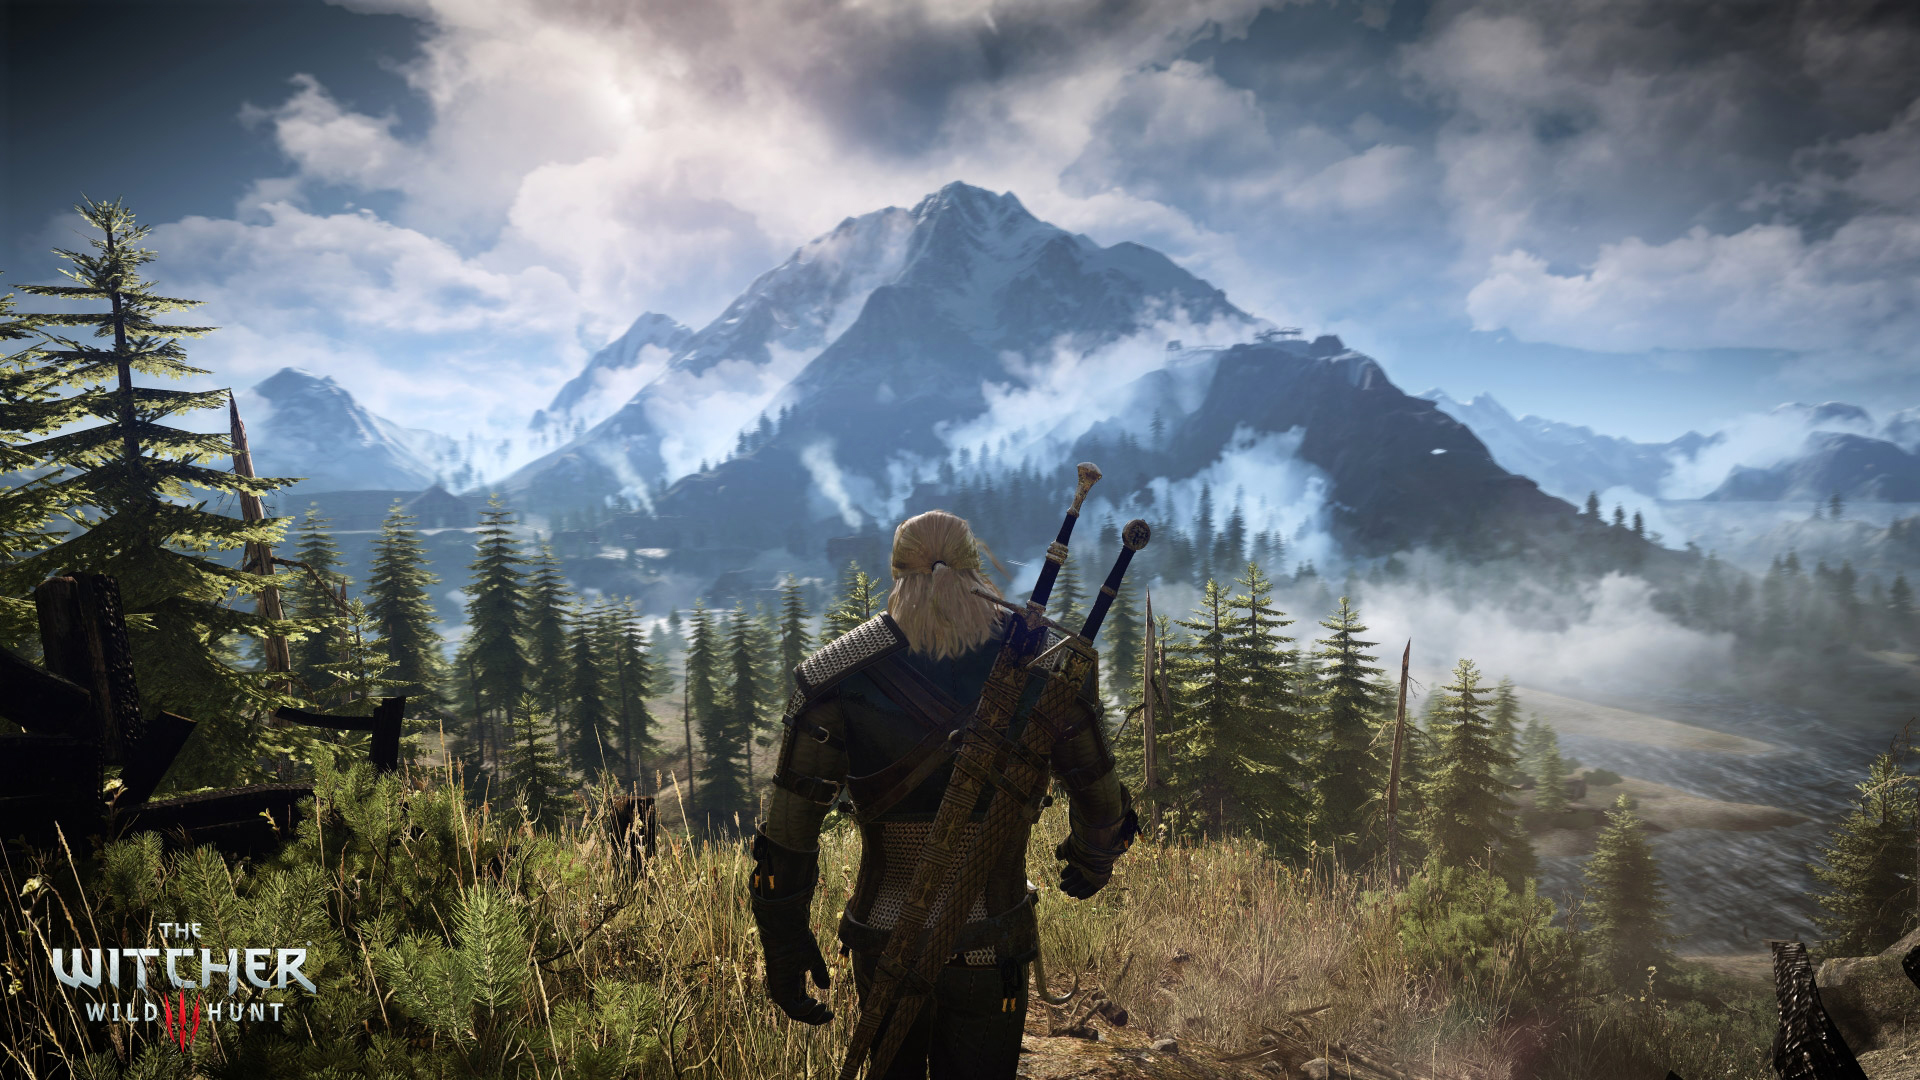 Free Download The Witcher 3 Wild Hunt Wallpaper 1920x1080